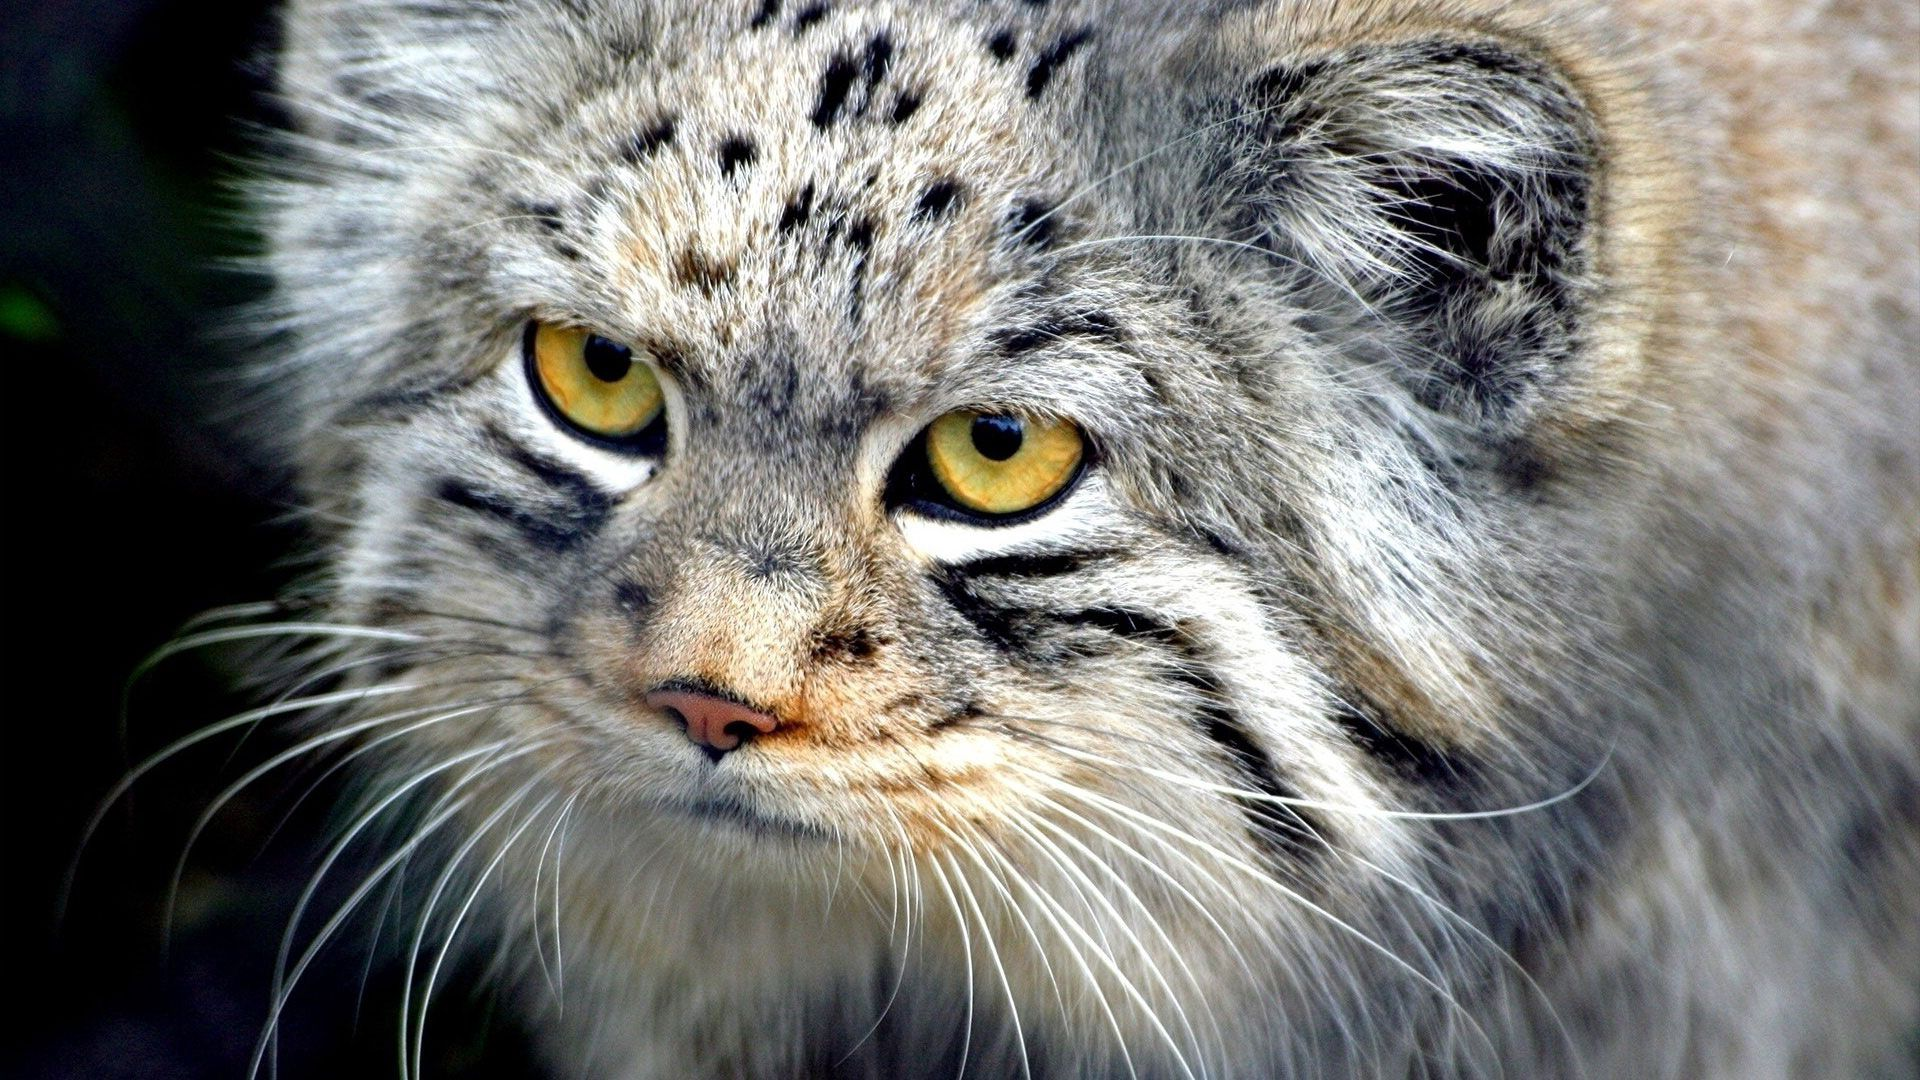 83878 download wallpaper Animals, Mustache, Moustache, Muzzle, Wool, Eyes, Pallas' Cat, Manul screensavers and pictures for free